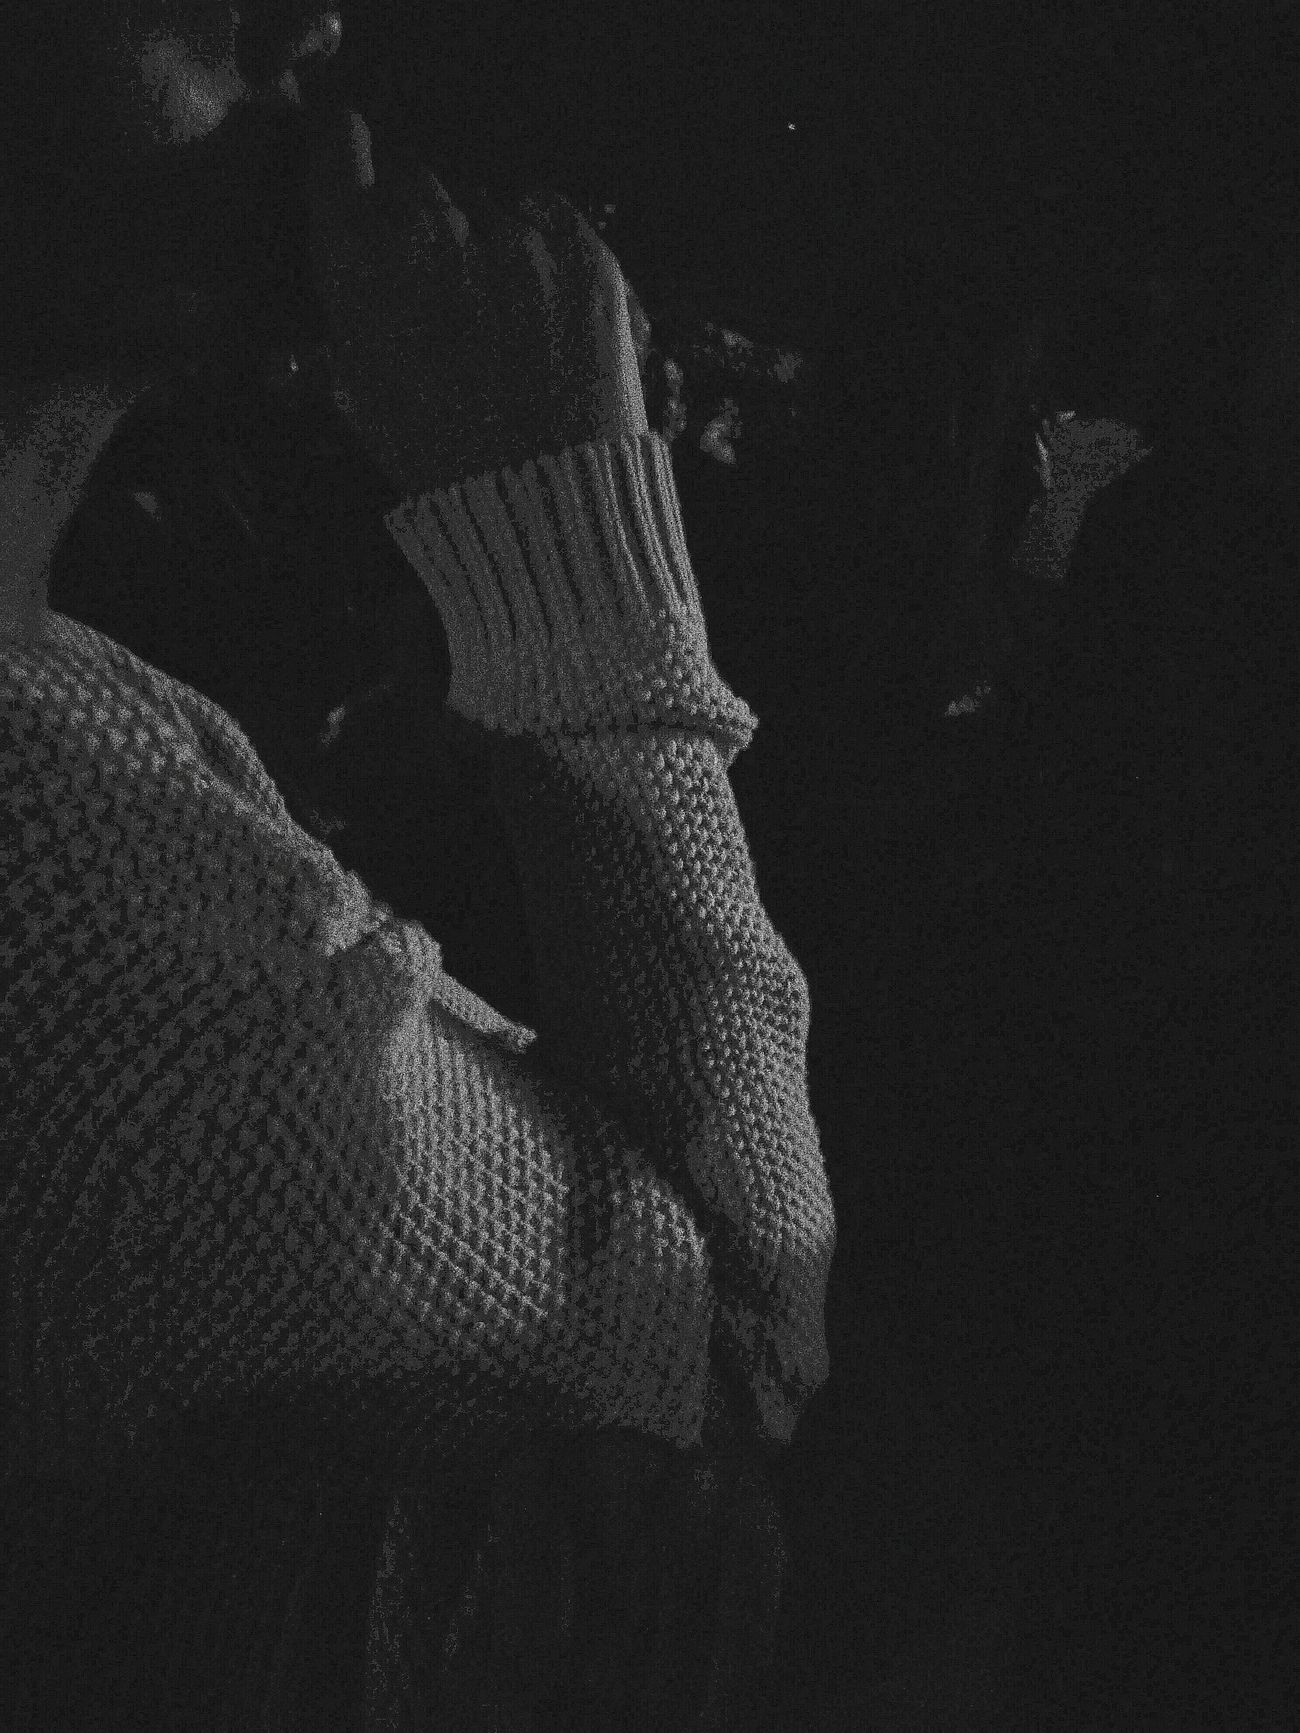 Concert Music Night Photography A Night Out.. People Photography Lost In Thought... Pensieroso ascoltare